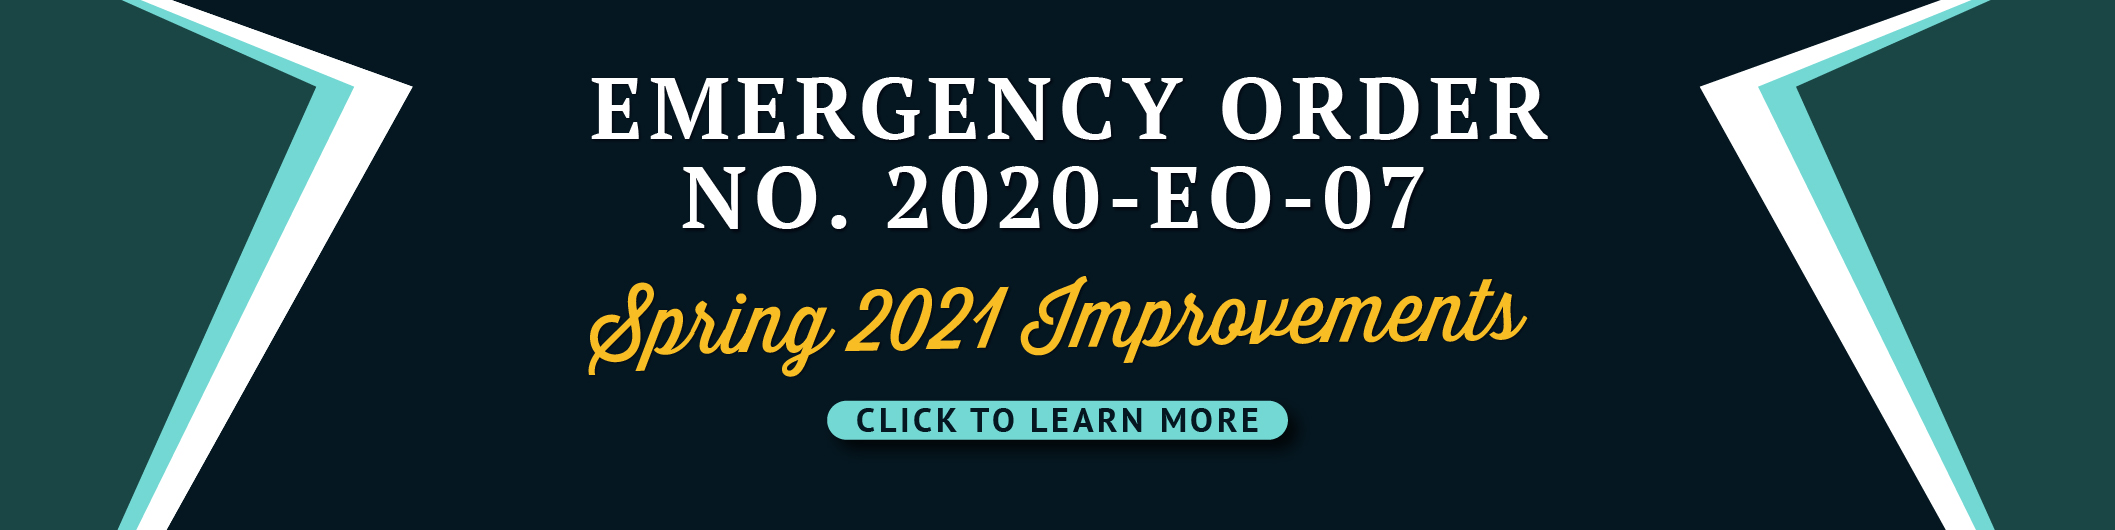 Emergency Order No. 2020-EO-07 - Spring 2021 Improvements